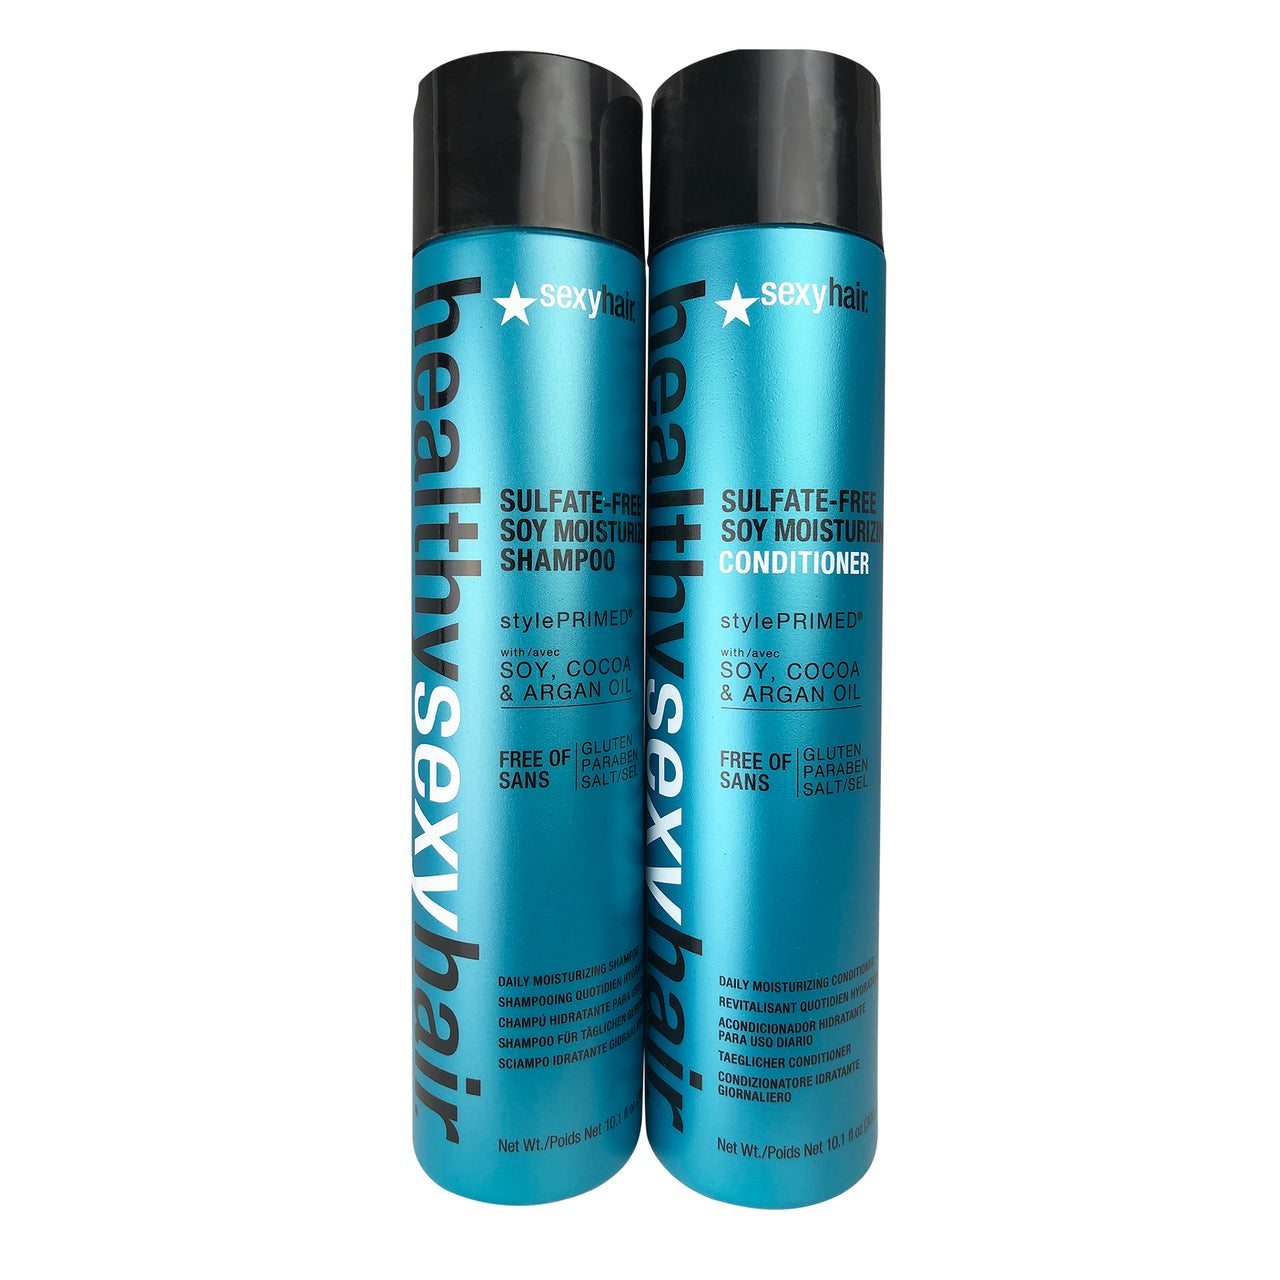 SexyHair Healthy Smooth Moist DUO 10.1 oz each